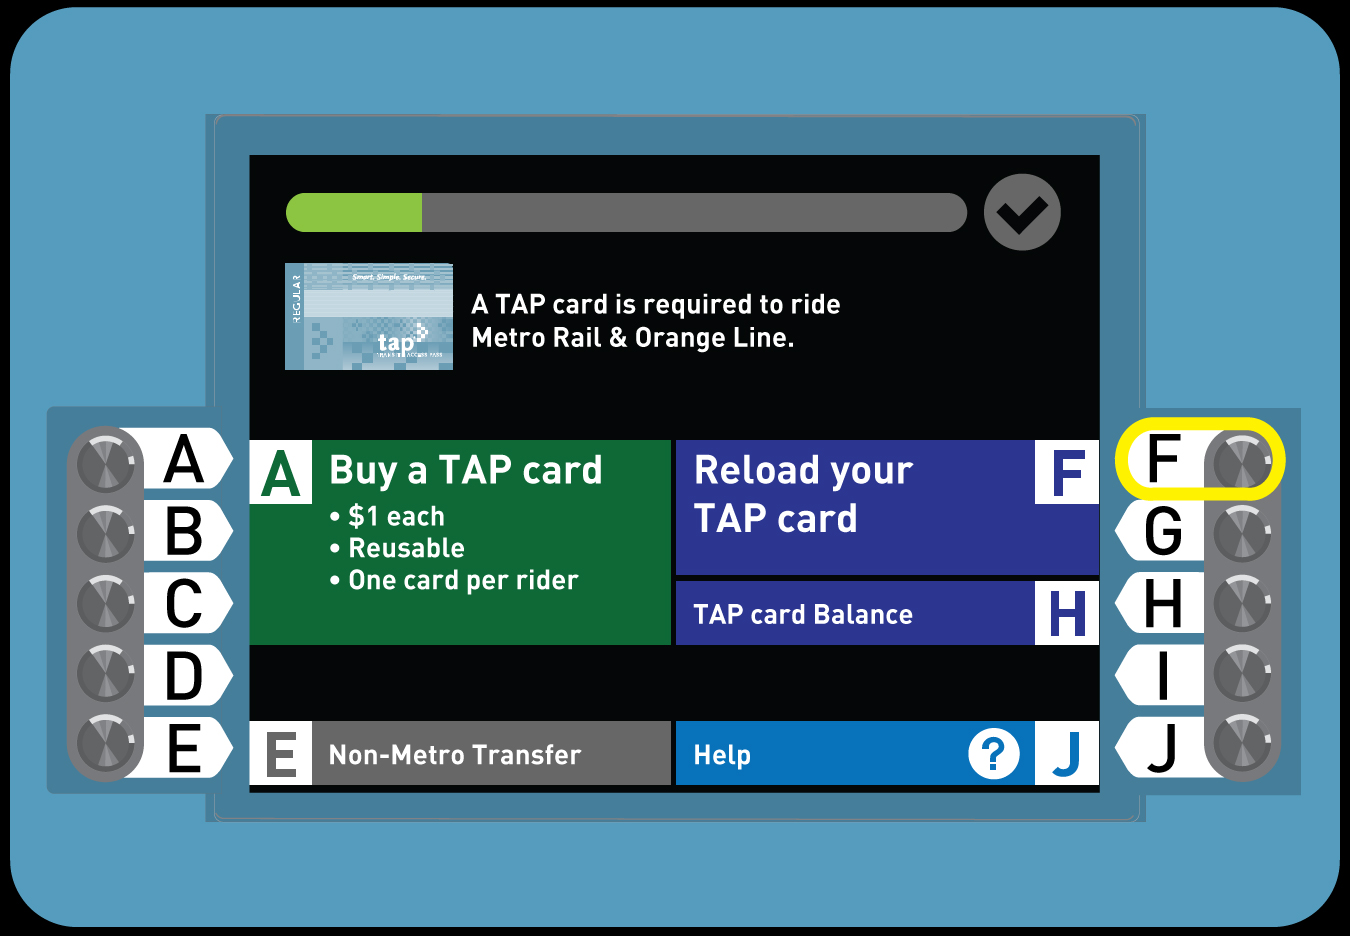 2. How to Load Senior TAP card with 1-Way Fare